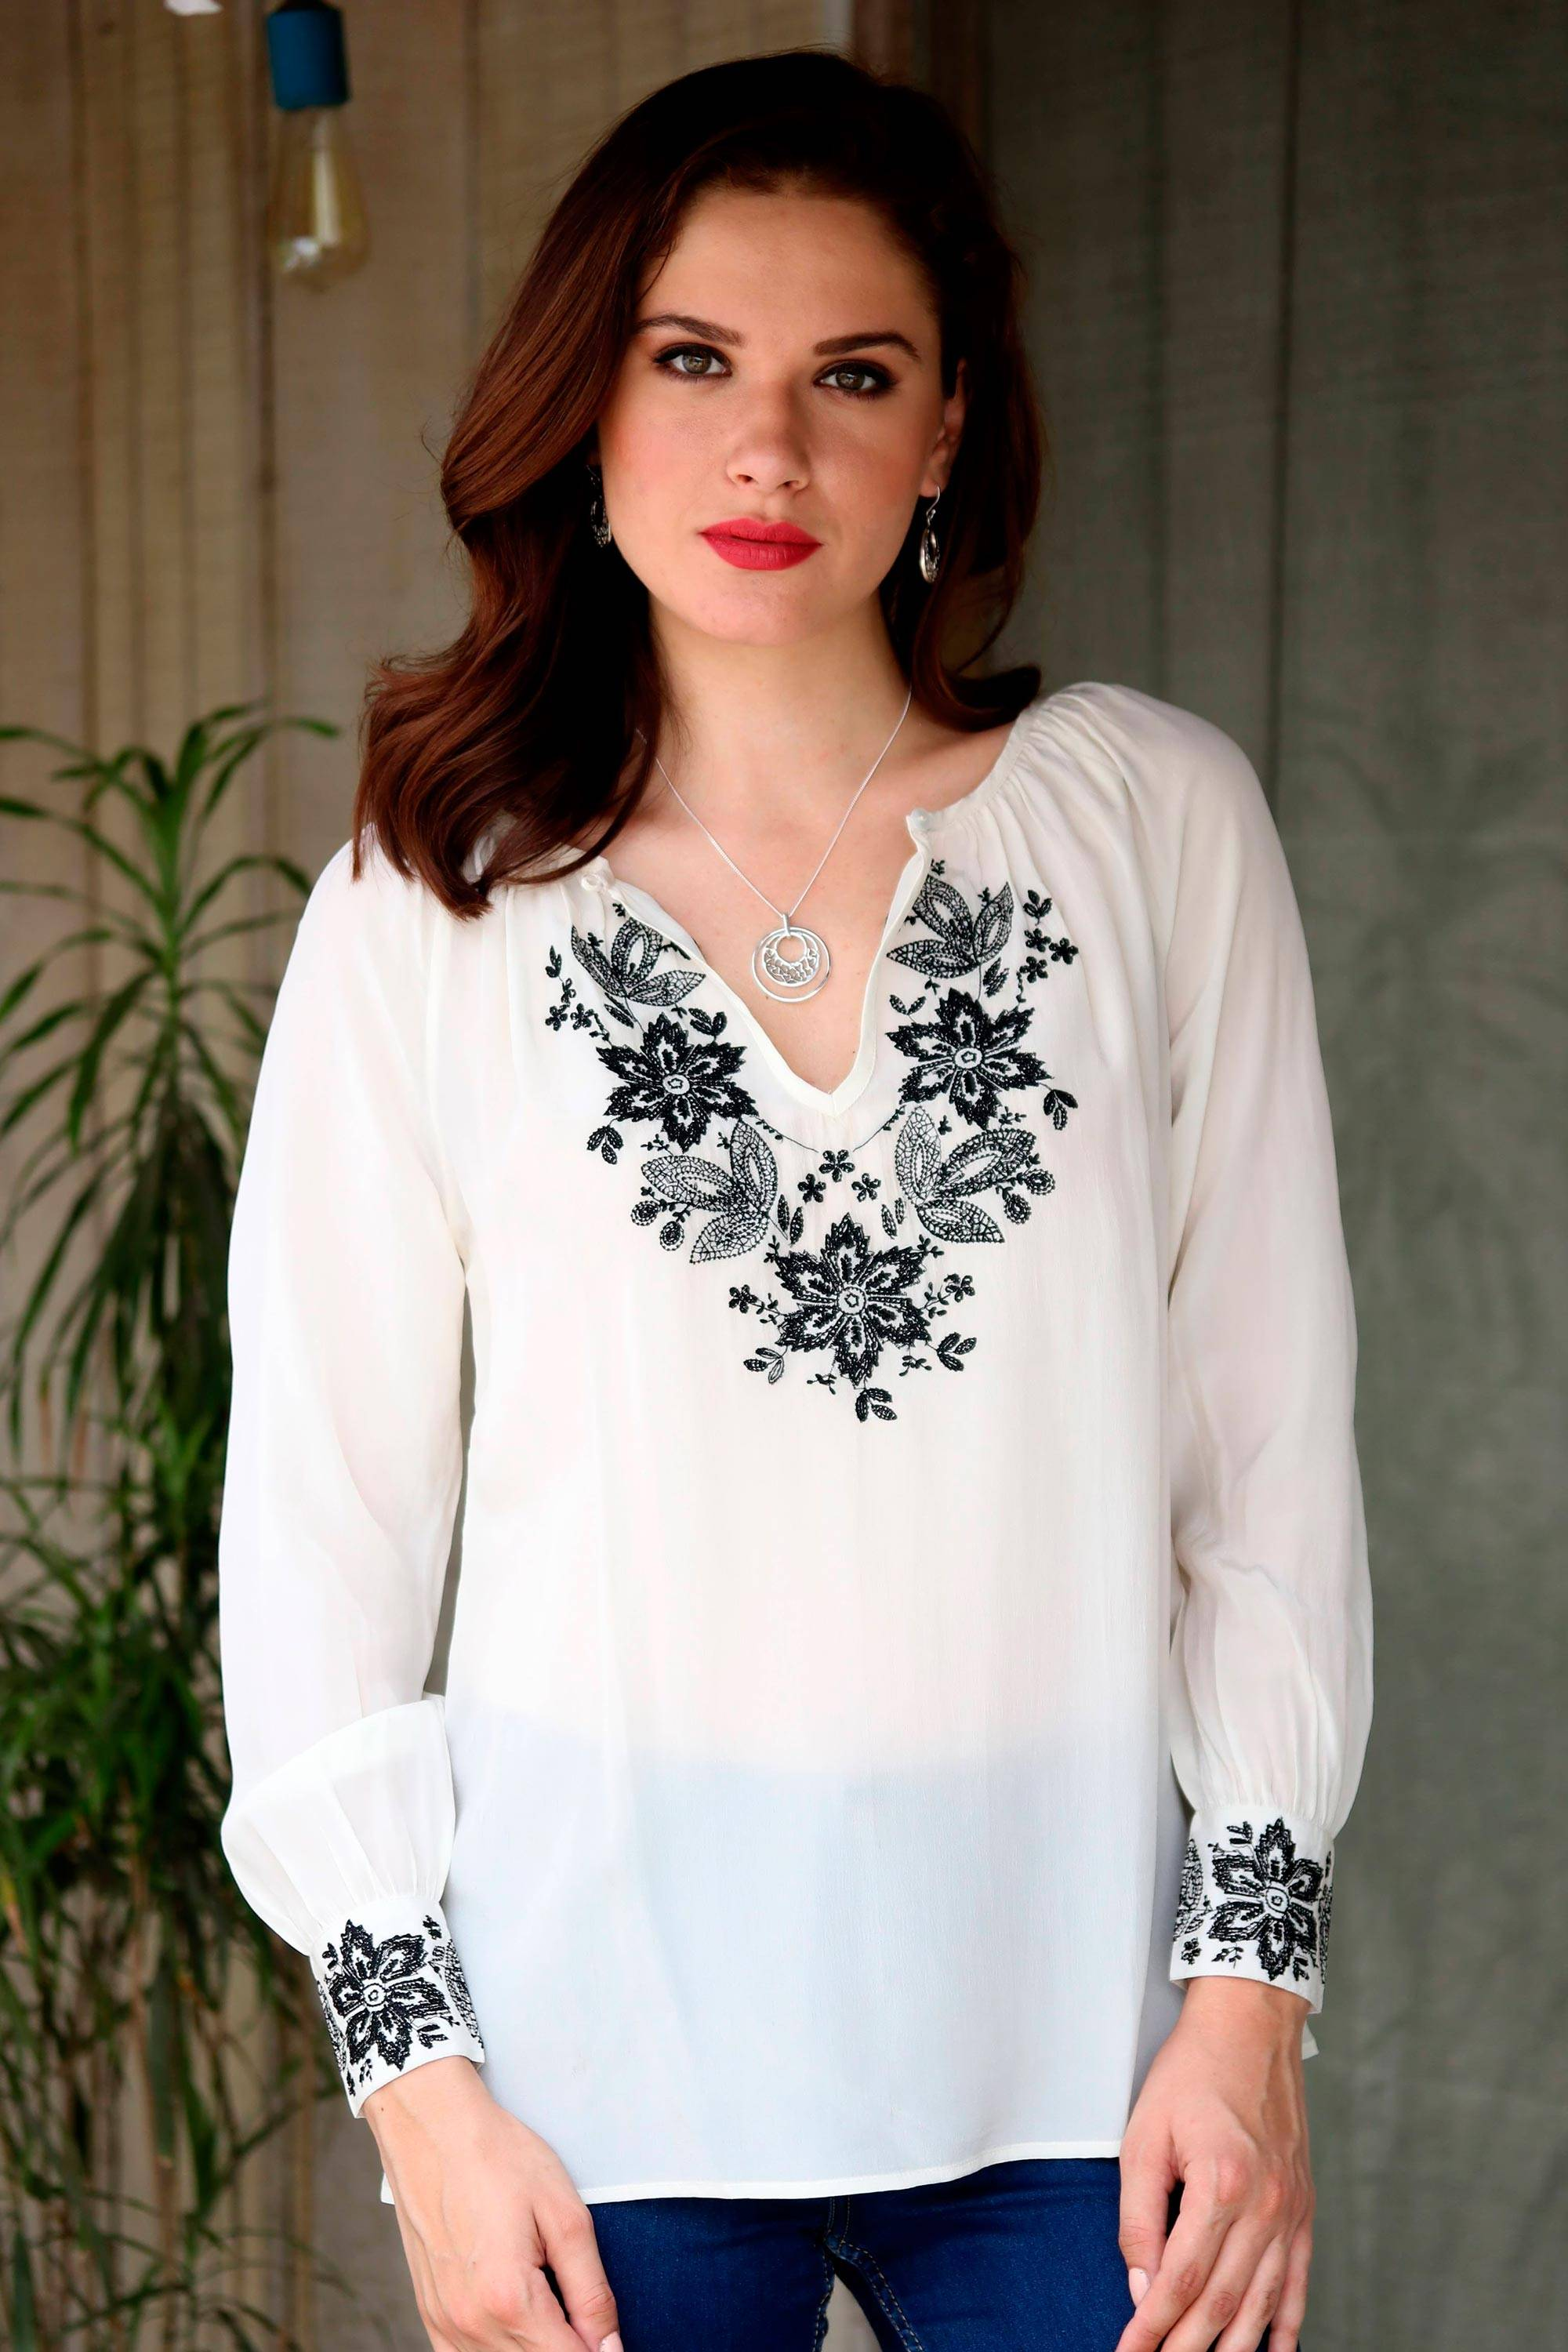 98e985b9f6 UNICEF Market | Ivory Silk Long-Sleeved Blouse with Black Floral ...